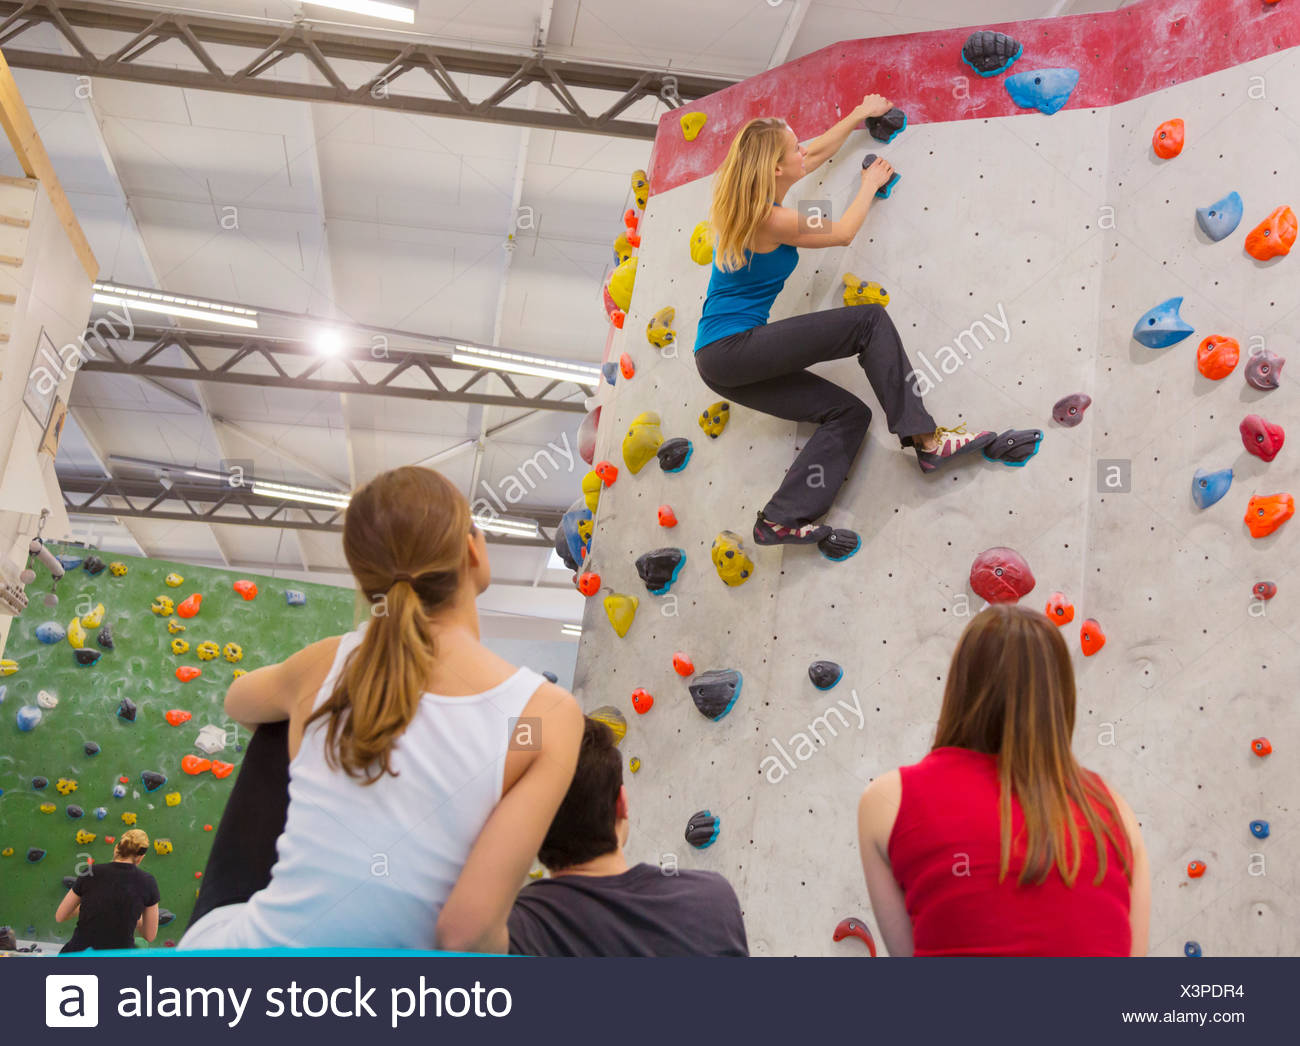 Friends relaxing together, indoor climbing - Stock Image